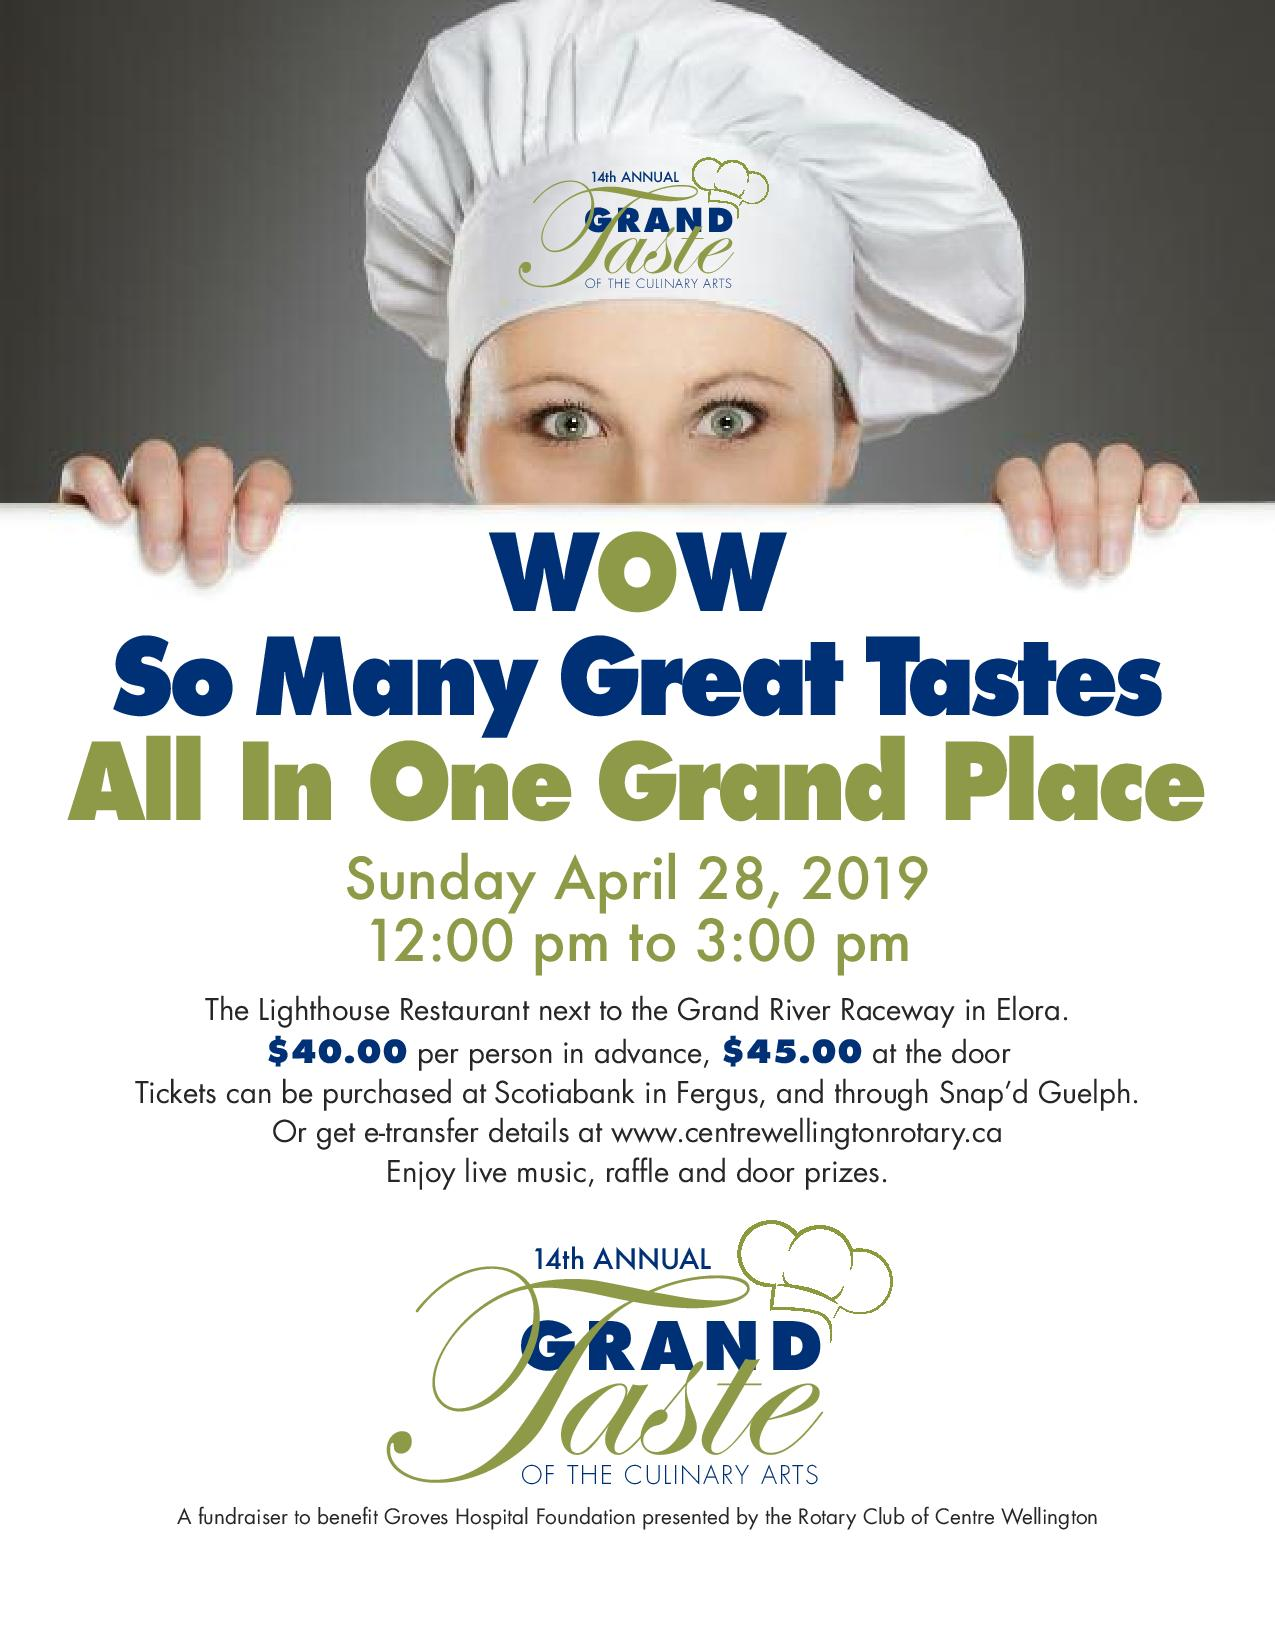 Grand Taste of the Culinary Arts 2019   Rotary Club of